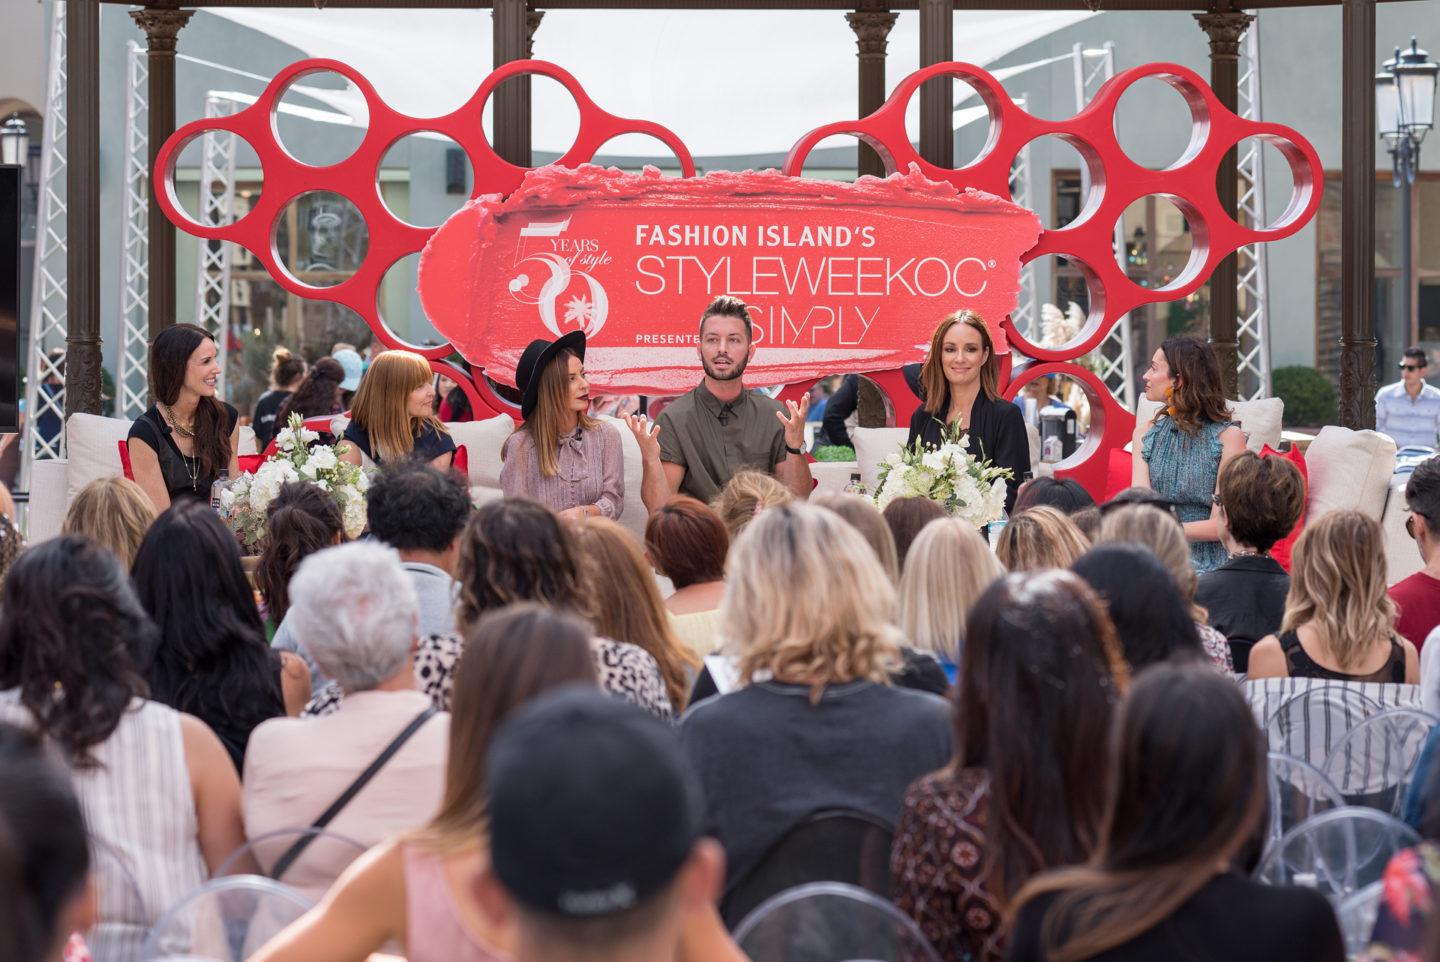 Fashion Island's StyleWeekOC® Celebrates the best in Orange County style on Saturday, September 15th